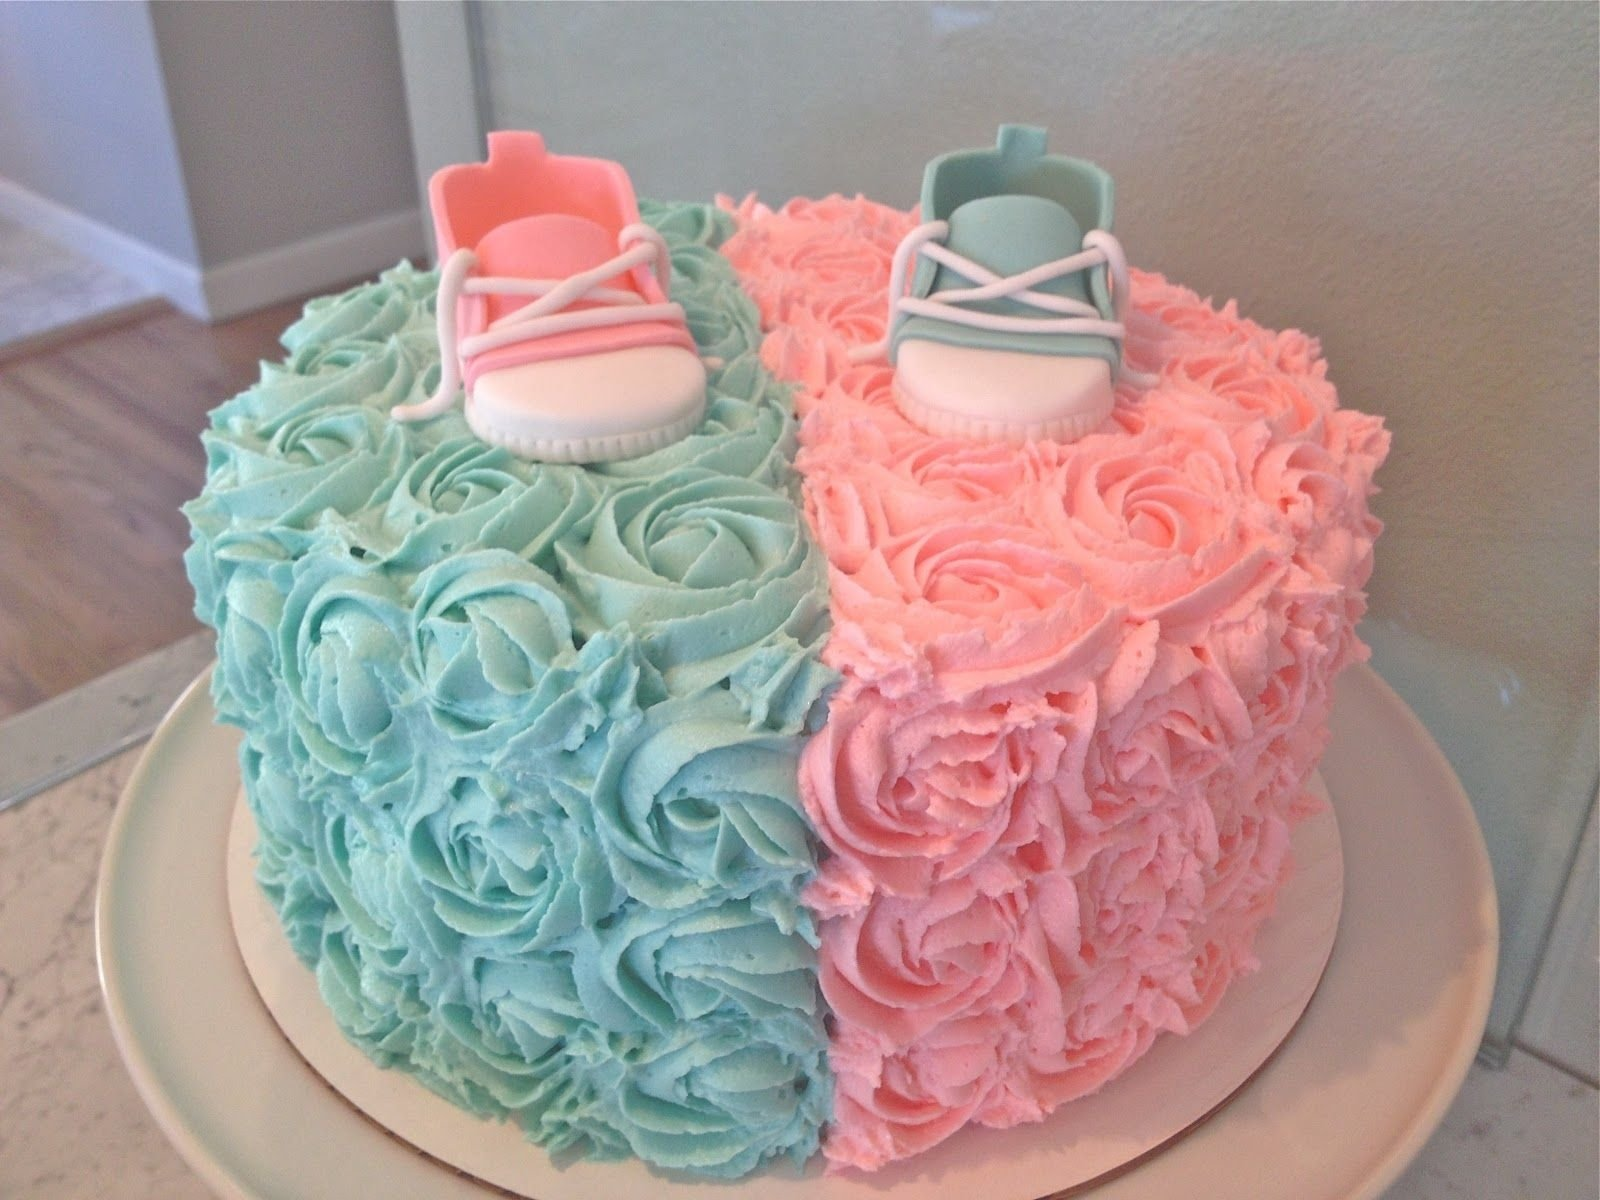 10 Stylish Gender Reveal Party Cake Ideas gender reveal cake gender reveal cake i have to have this cake at 2020